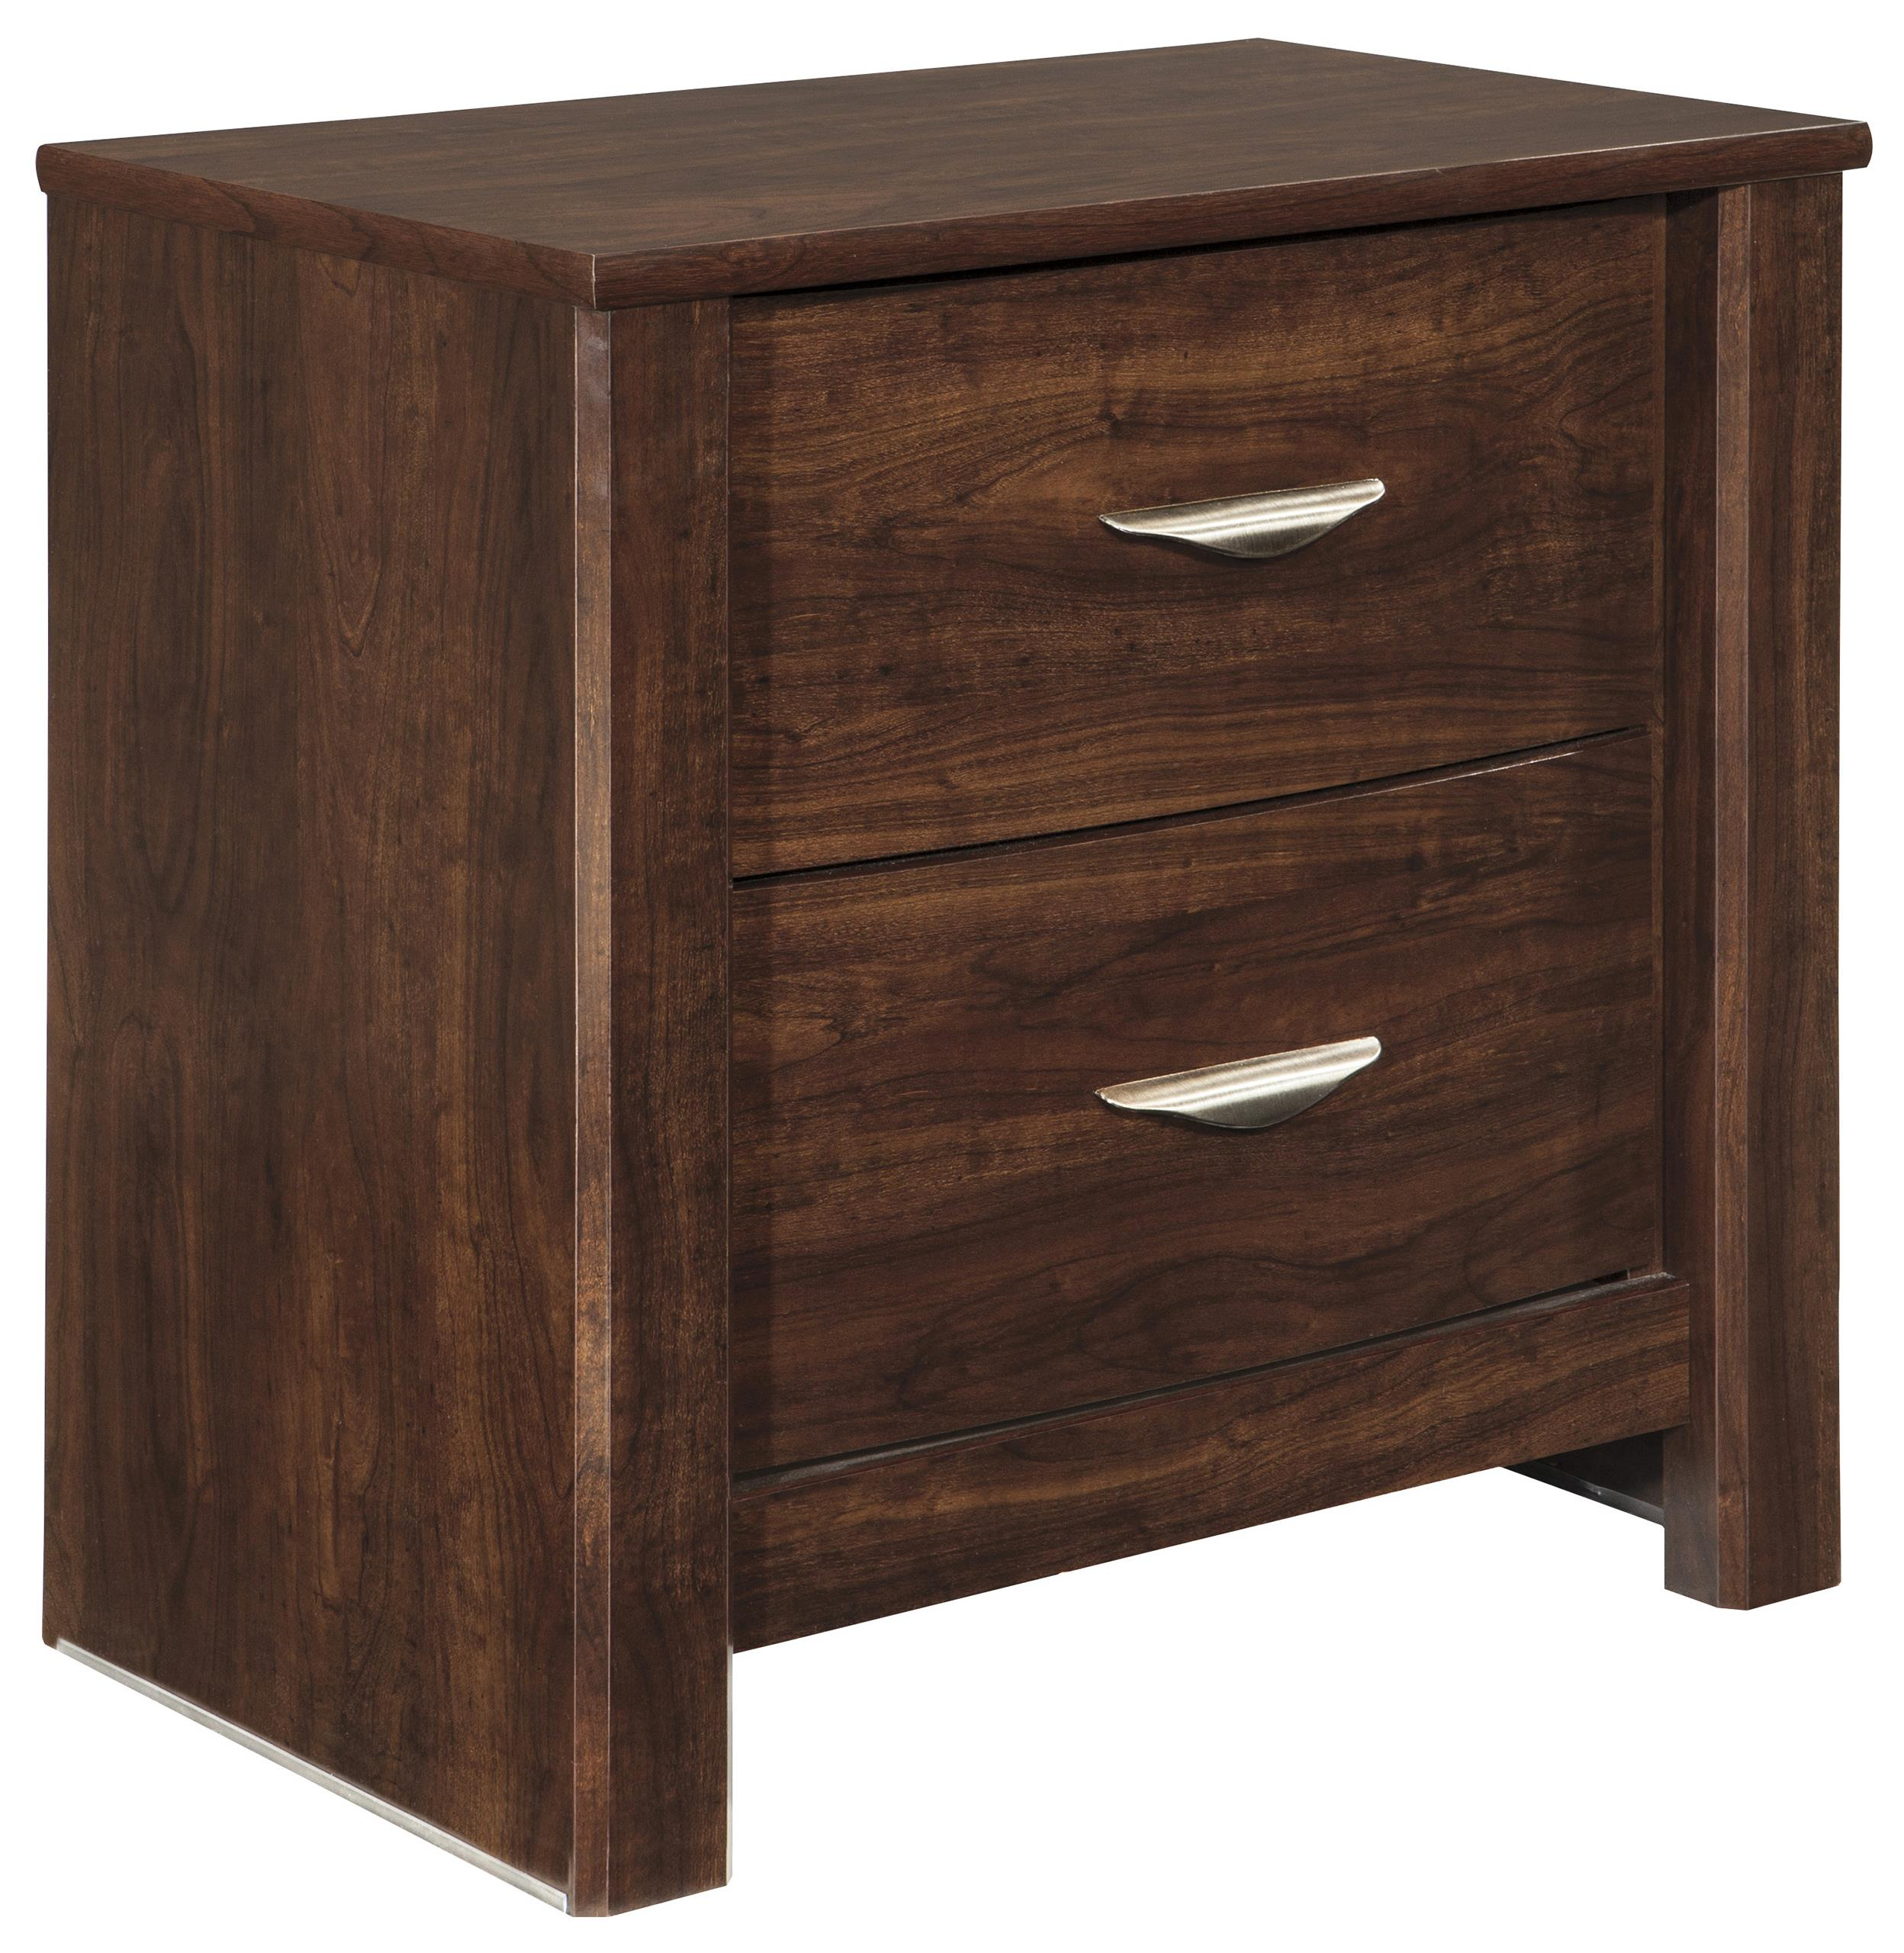 Signature Design by Ashley Corraya Two Drawer Night Stand - Item Number: B428-92